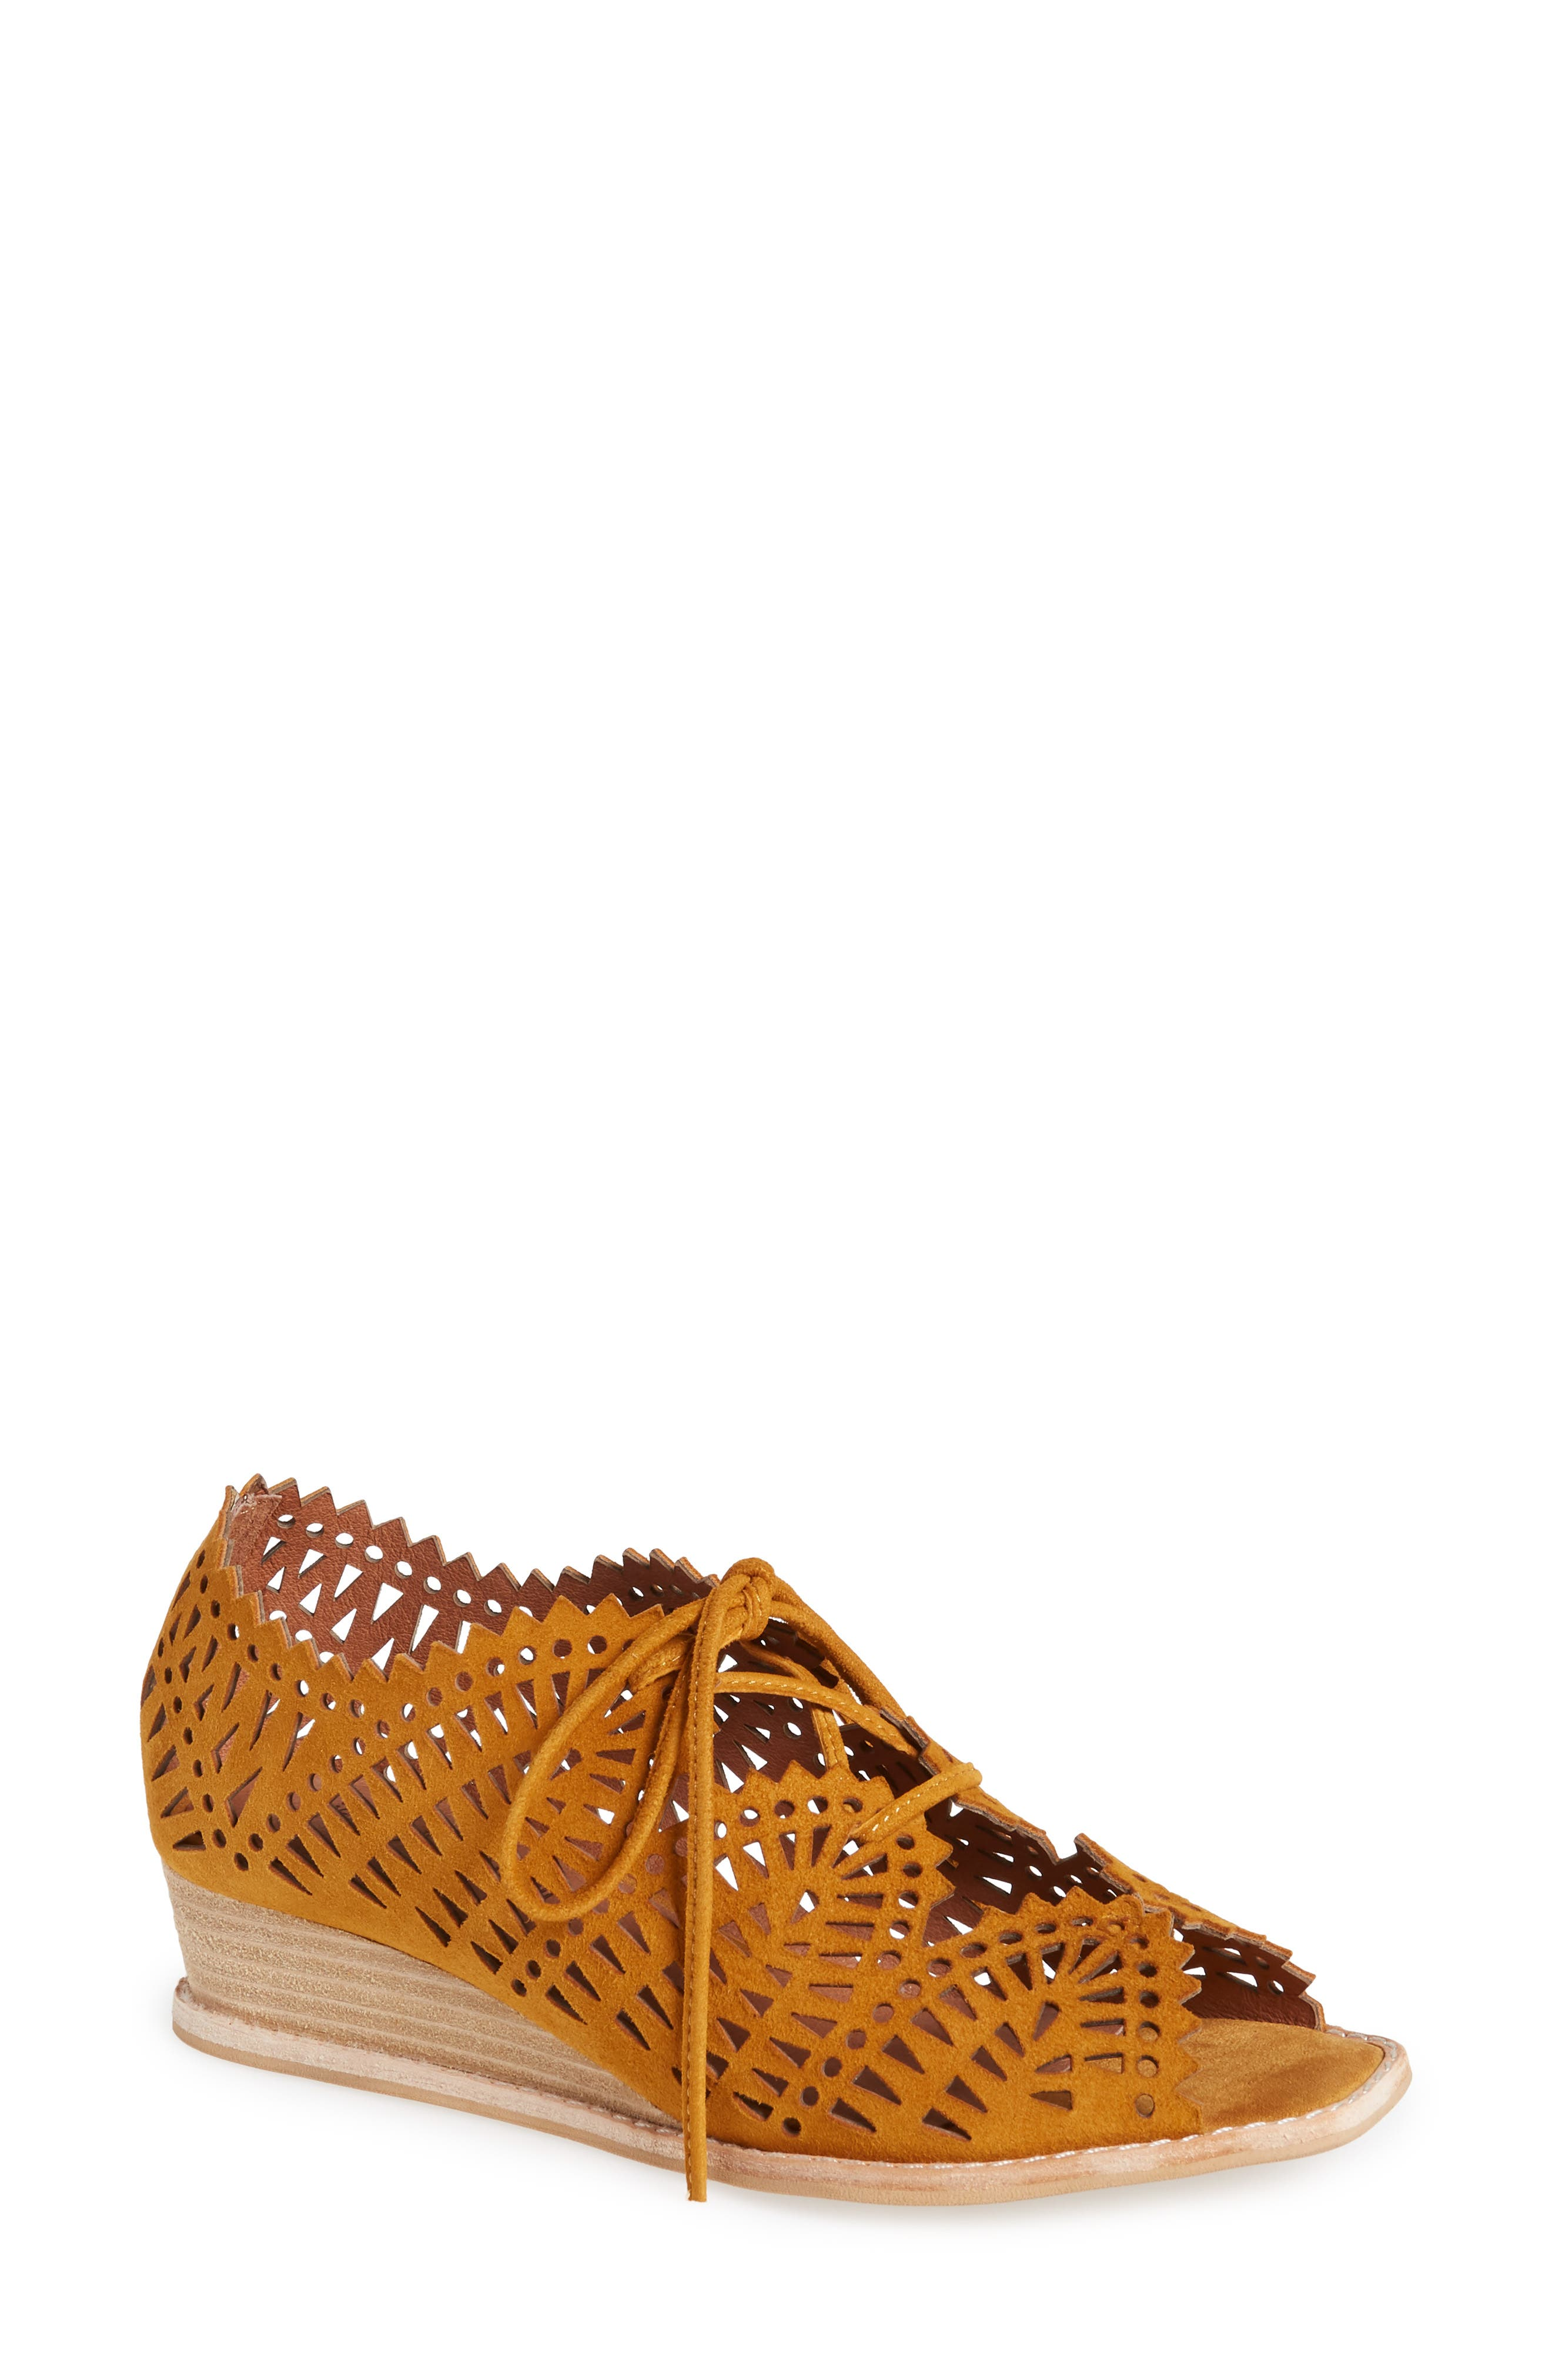 Jeffrey Campbell Espejo Lace-Up Wedge- Yellow